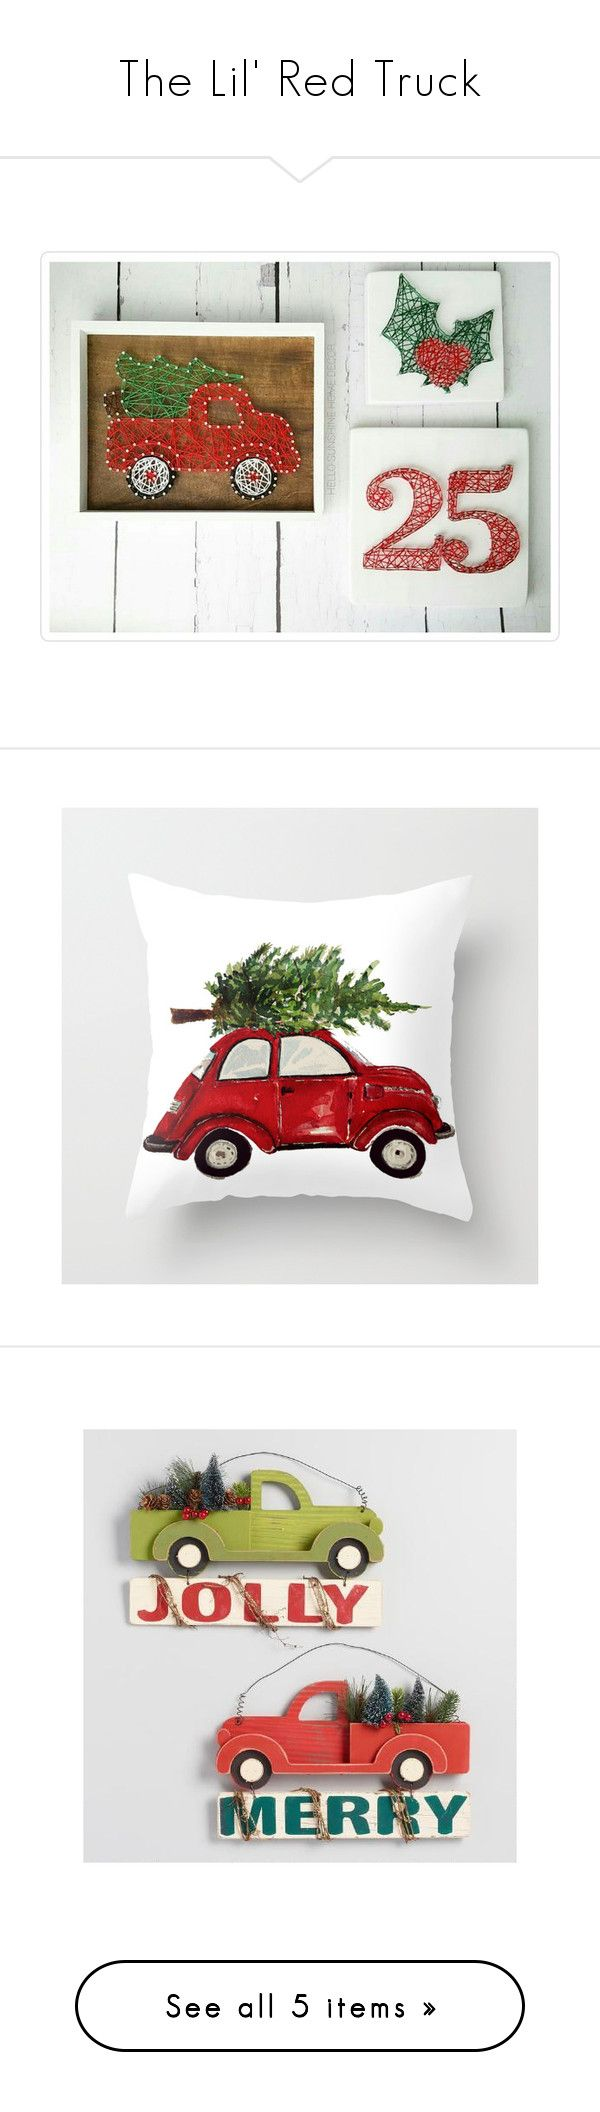 The Lil' Red Truck by hellosunshinehomedecor on Polyvore featuring home, home decor, throw pillows, christmas, pillows, christmas home decor, red home accessories, quote throw pillows, red home decor and christmas throw pillows